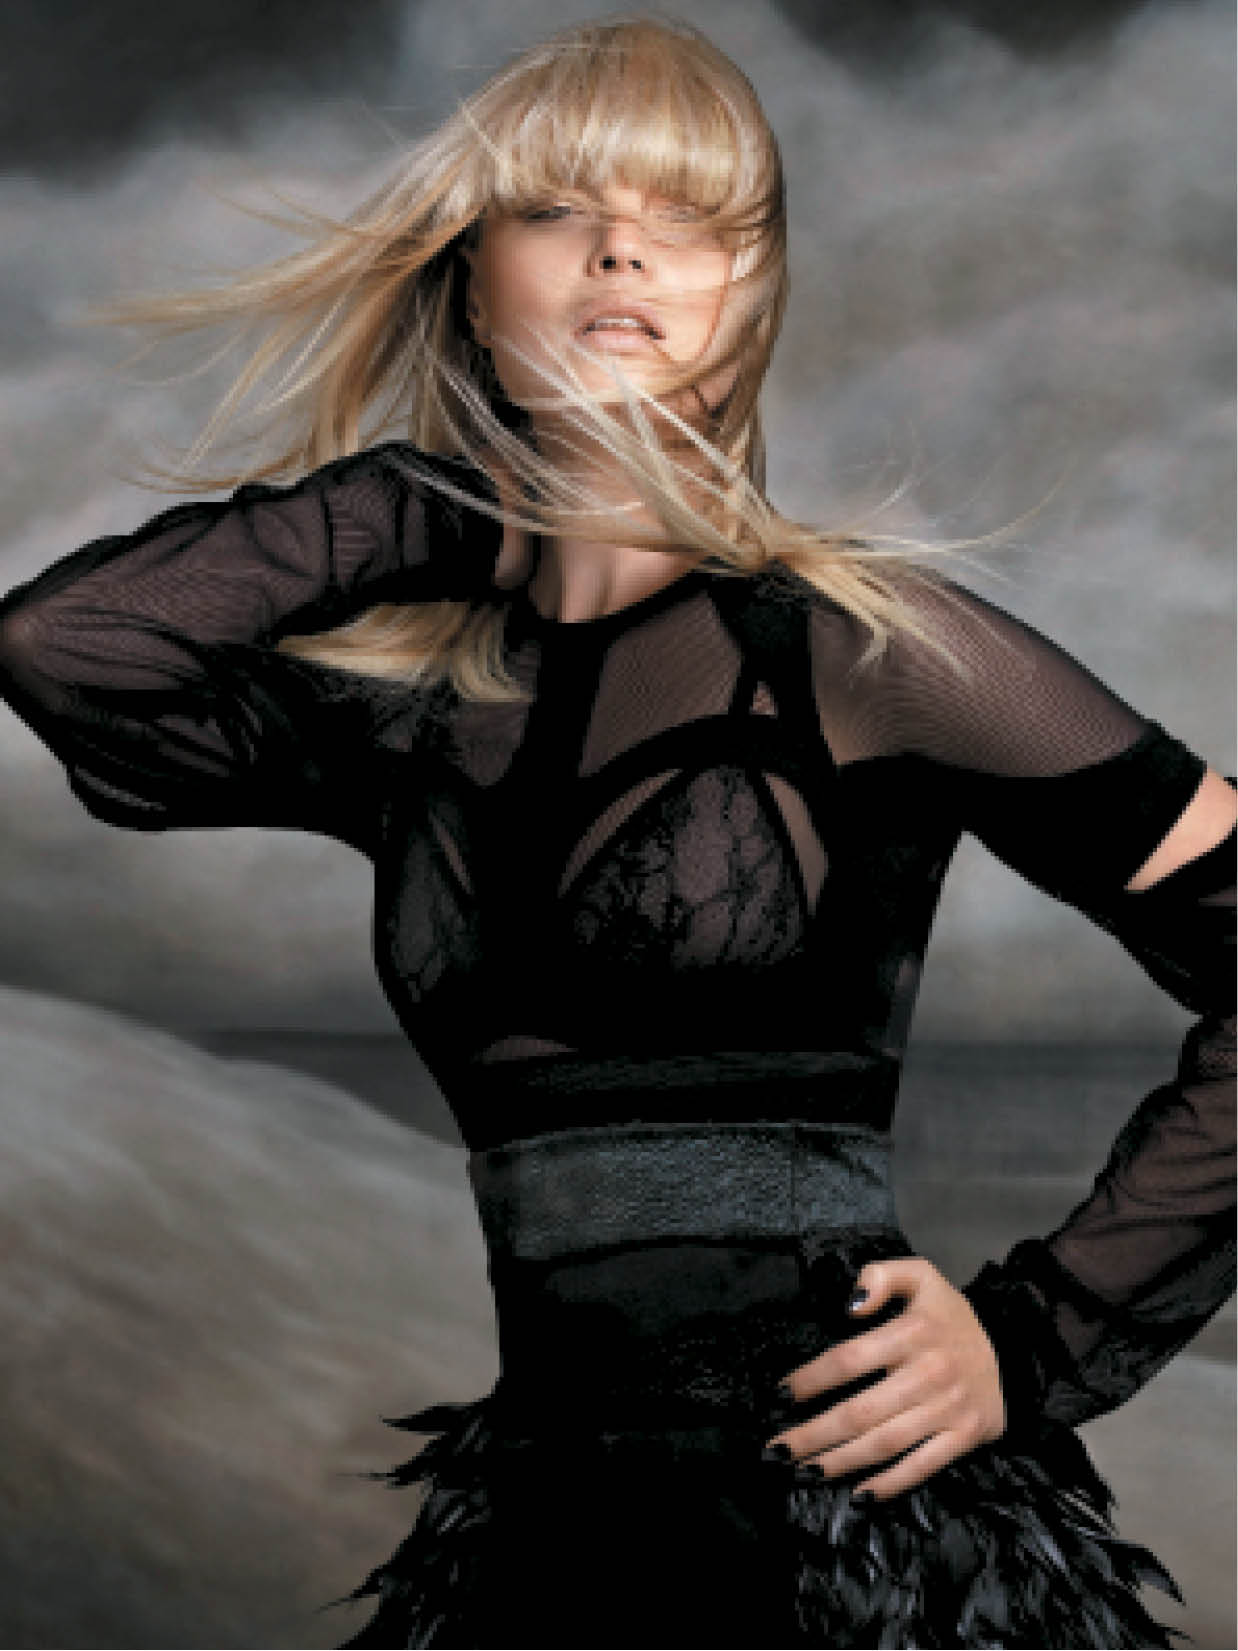 To create a windswept blonde look, The Rainbow Room International Artistic Team added full false-fringe pieces in multiple tones to create depth, shadows, movement and texture.